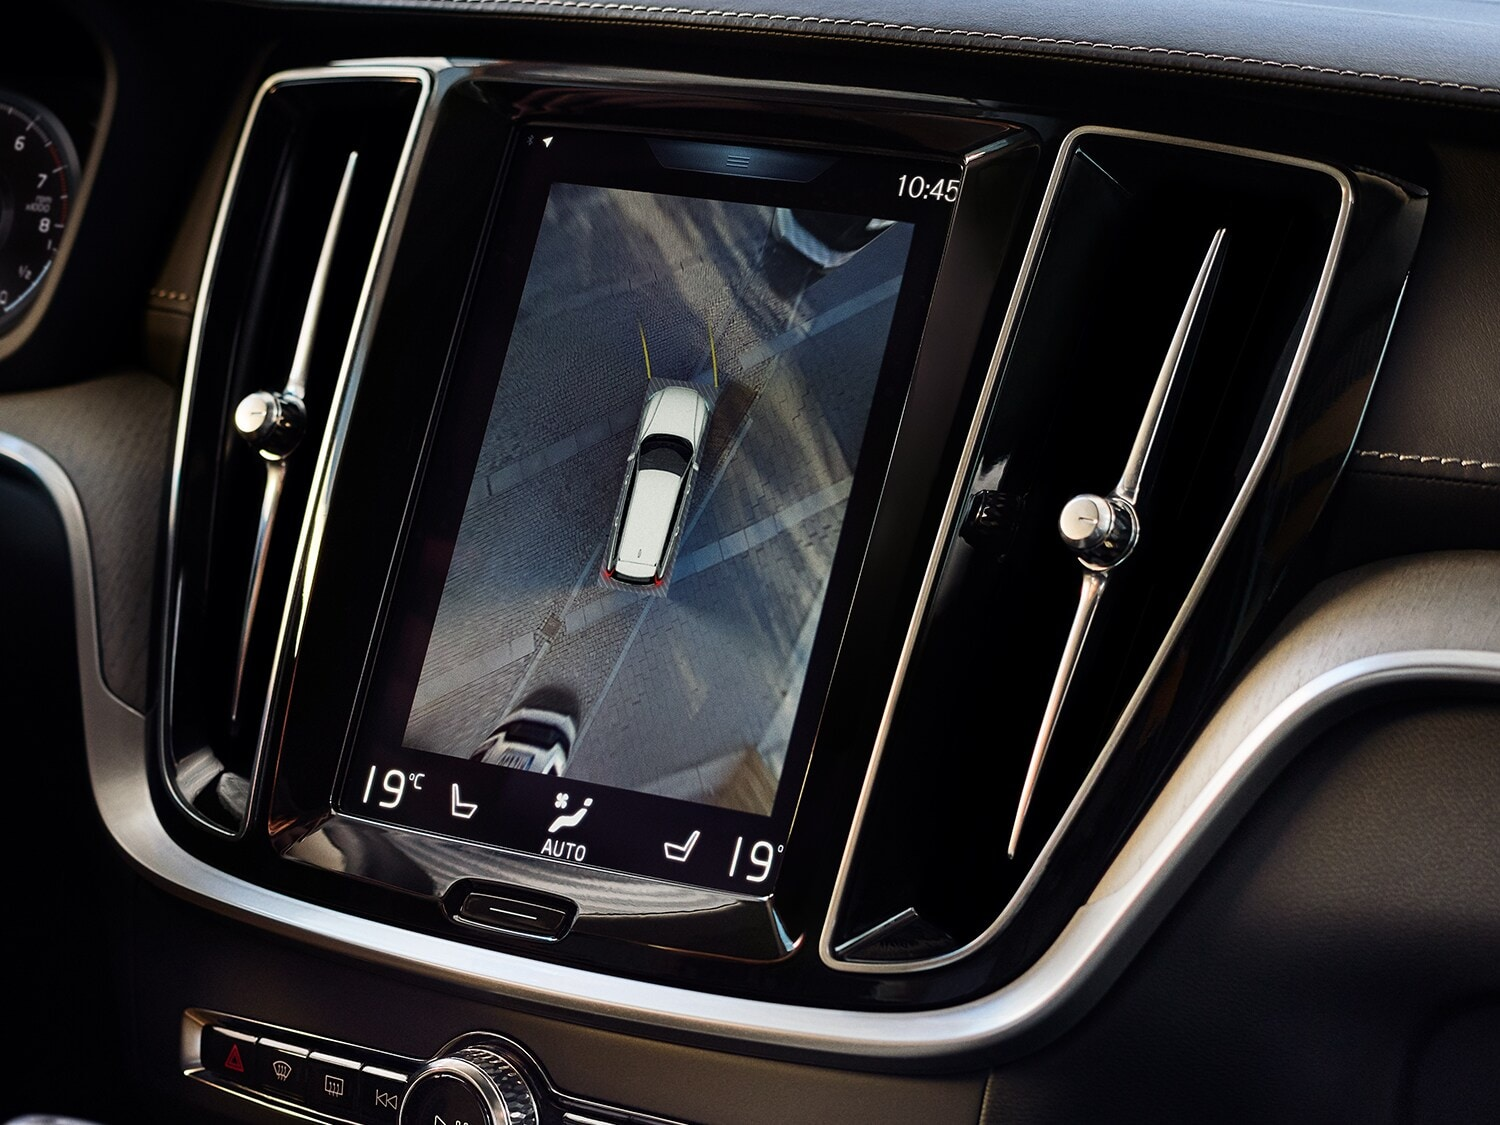 Centre display of the Volvo V90 showing 360° camera view